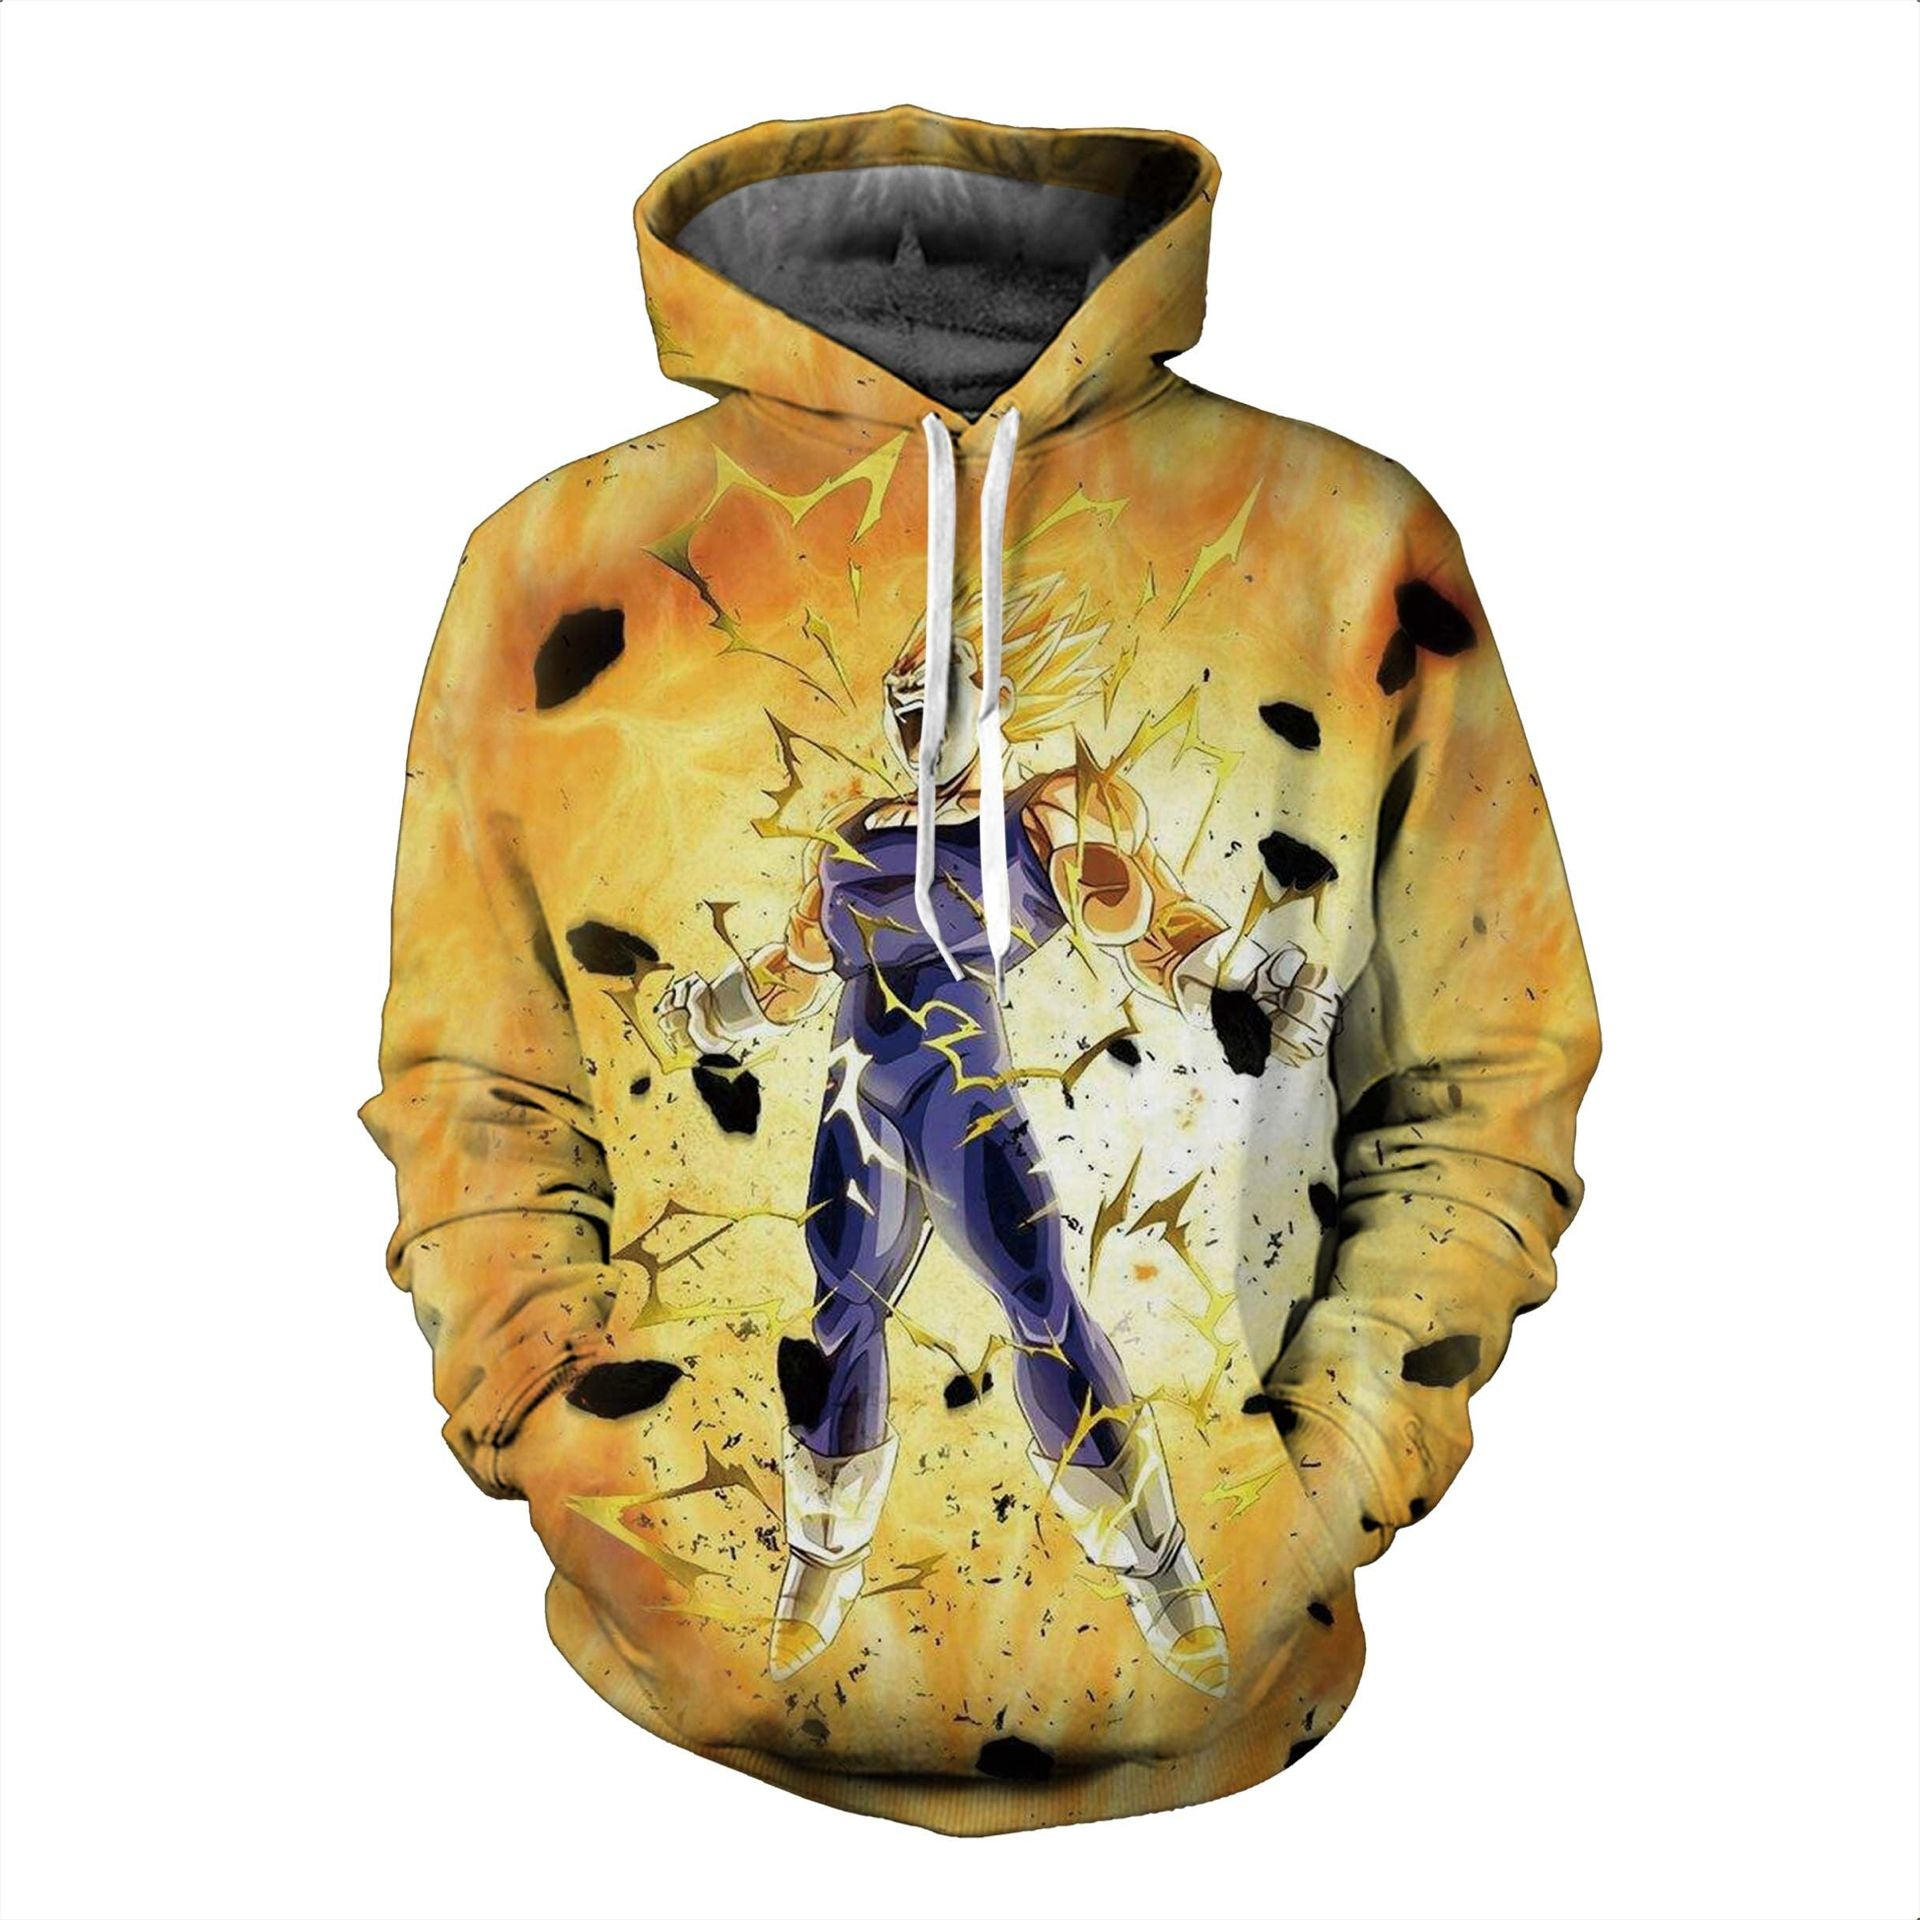 Dragon Ball Hoodies, 3D Clear Print, Best Quality : Design 6667